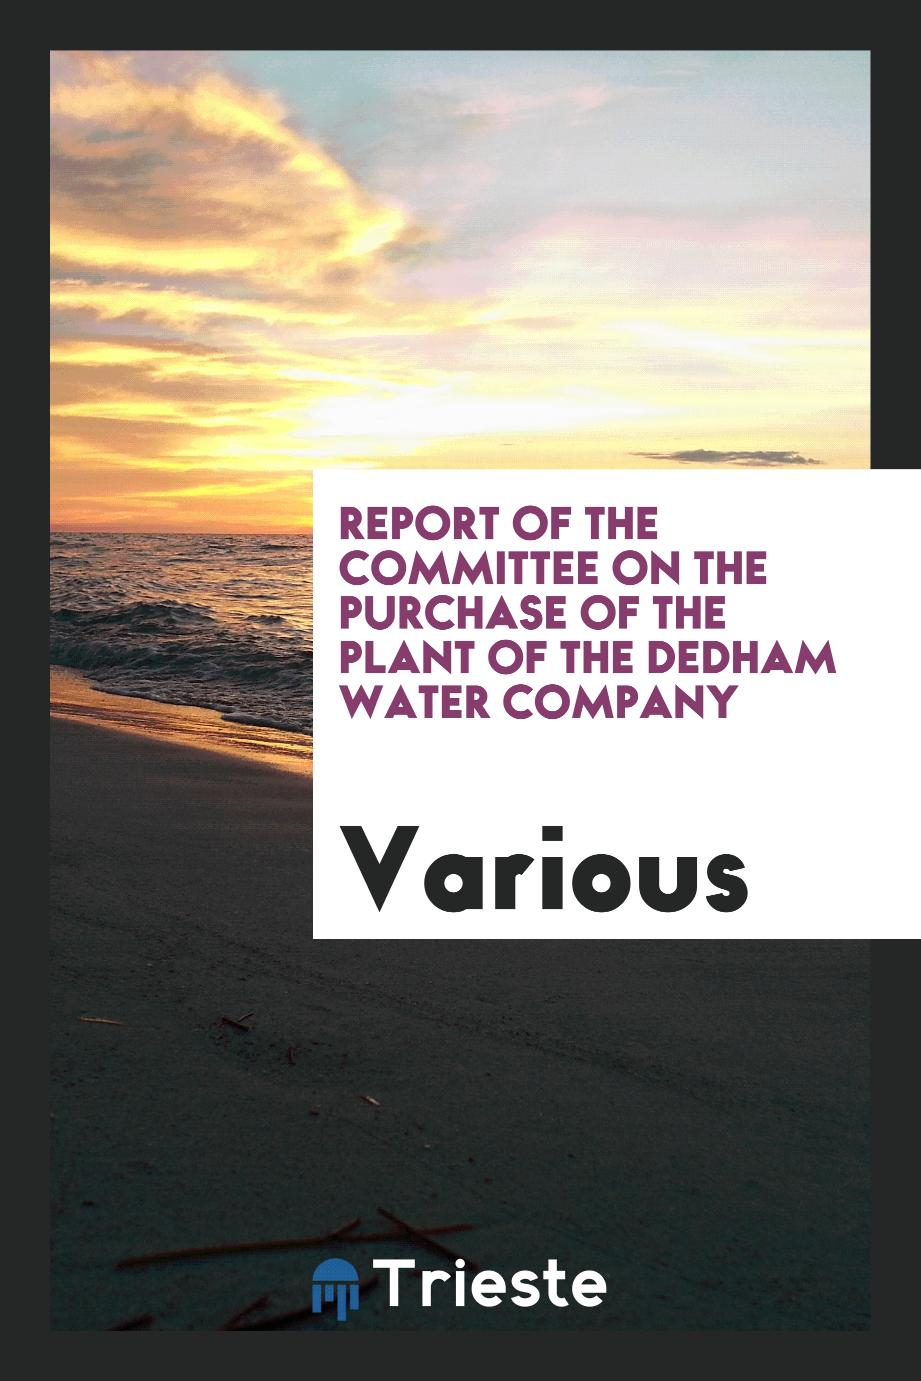 Report of the Committee on the Purchase of the Plant of the Dedham Water Company